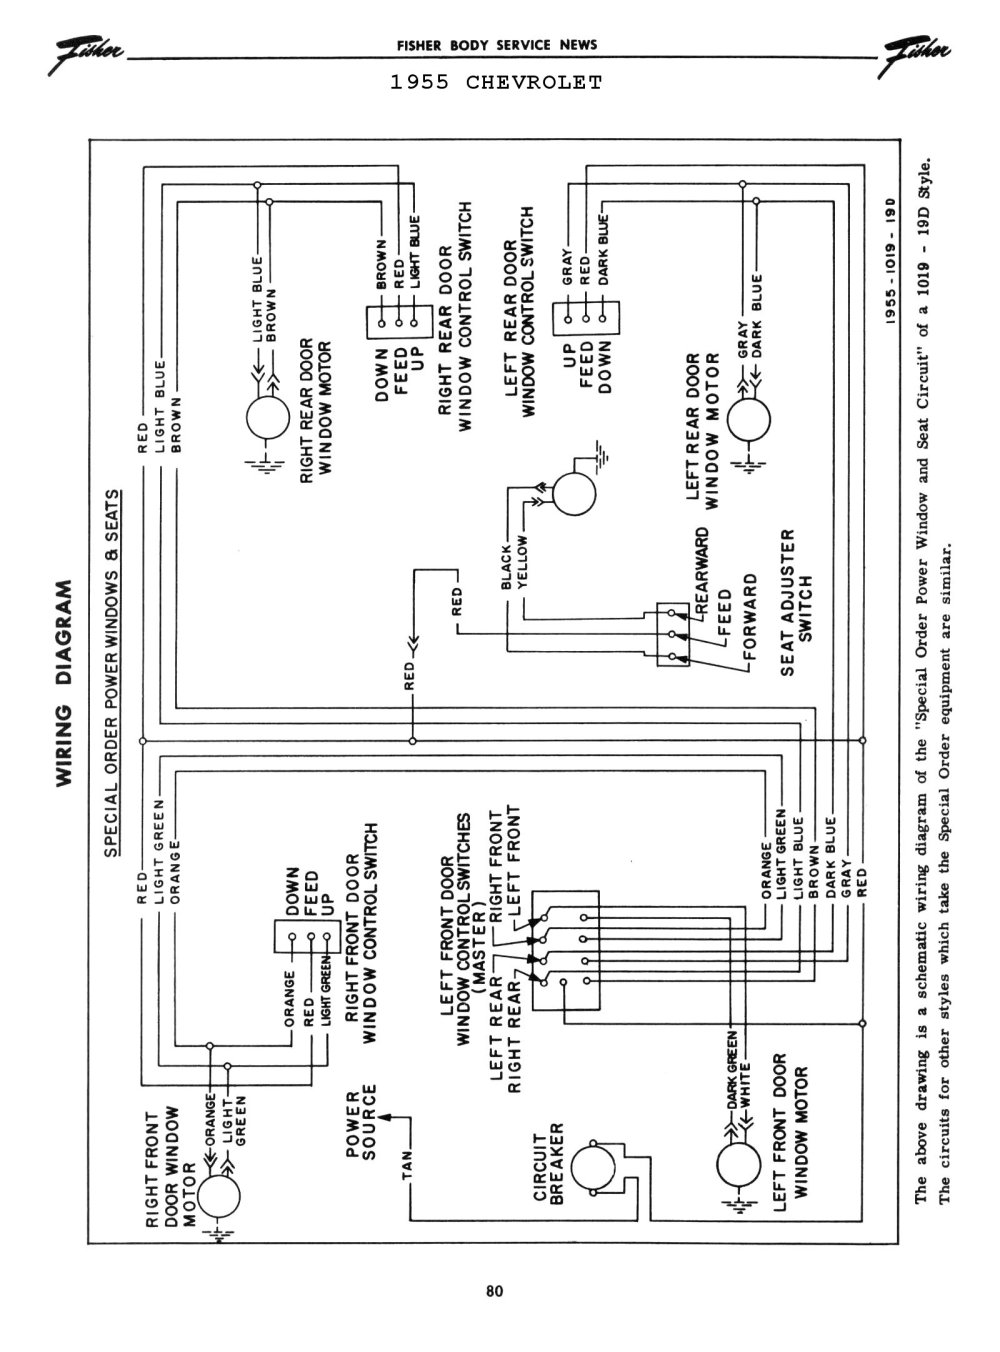 medium resolution of 56 chevy belair wiring diagram wiring diagram todays56 chevy belair wiring diagram wiring library 56 chevy